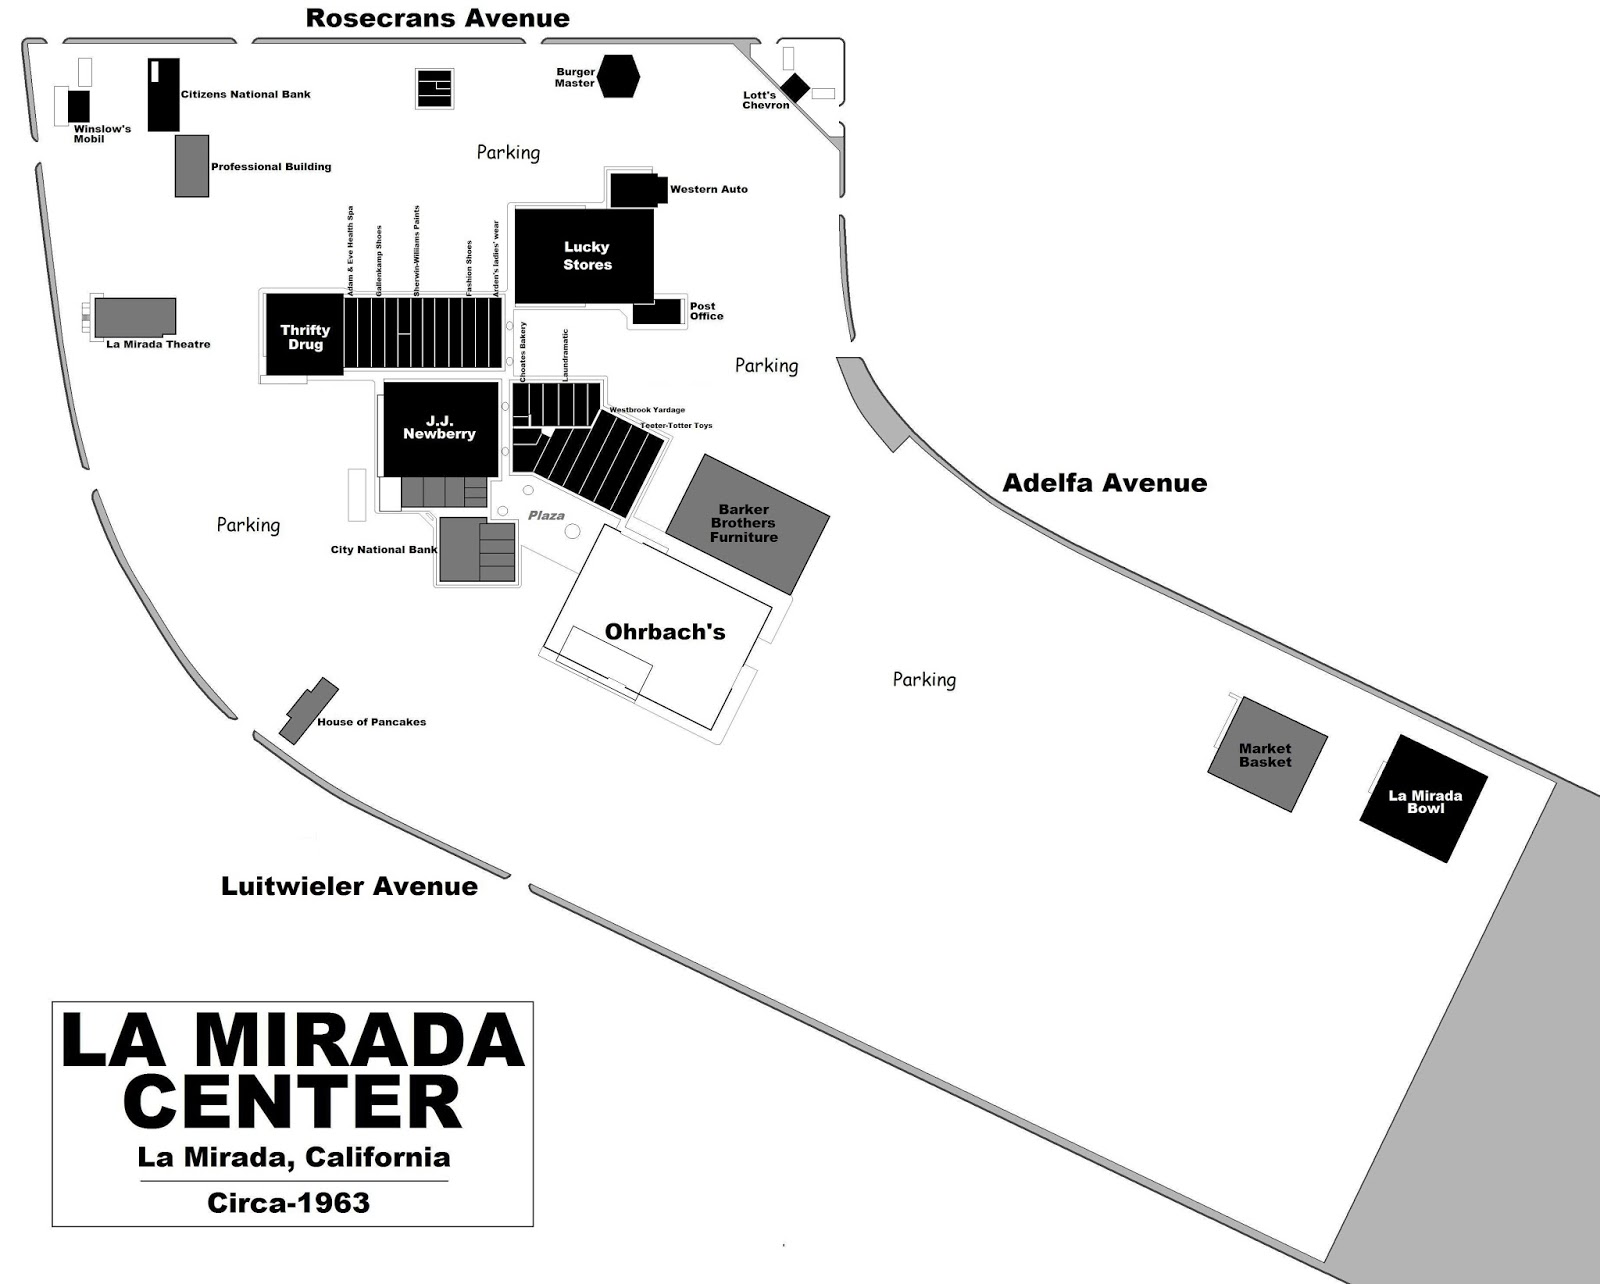 Awesome A Circa U002763 Physical Layout Of LA MIRADA CENTER. By This Time, There Were  Two Supermarkets, A 5 U0026 Dime, Drug Store, Furniture Store, Bowling Alley,  ...